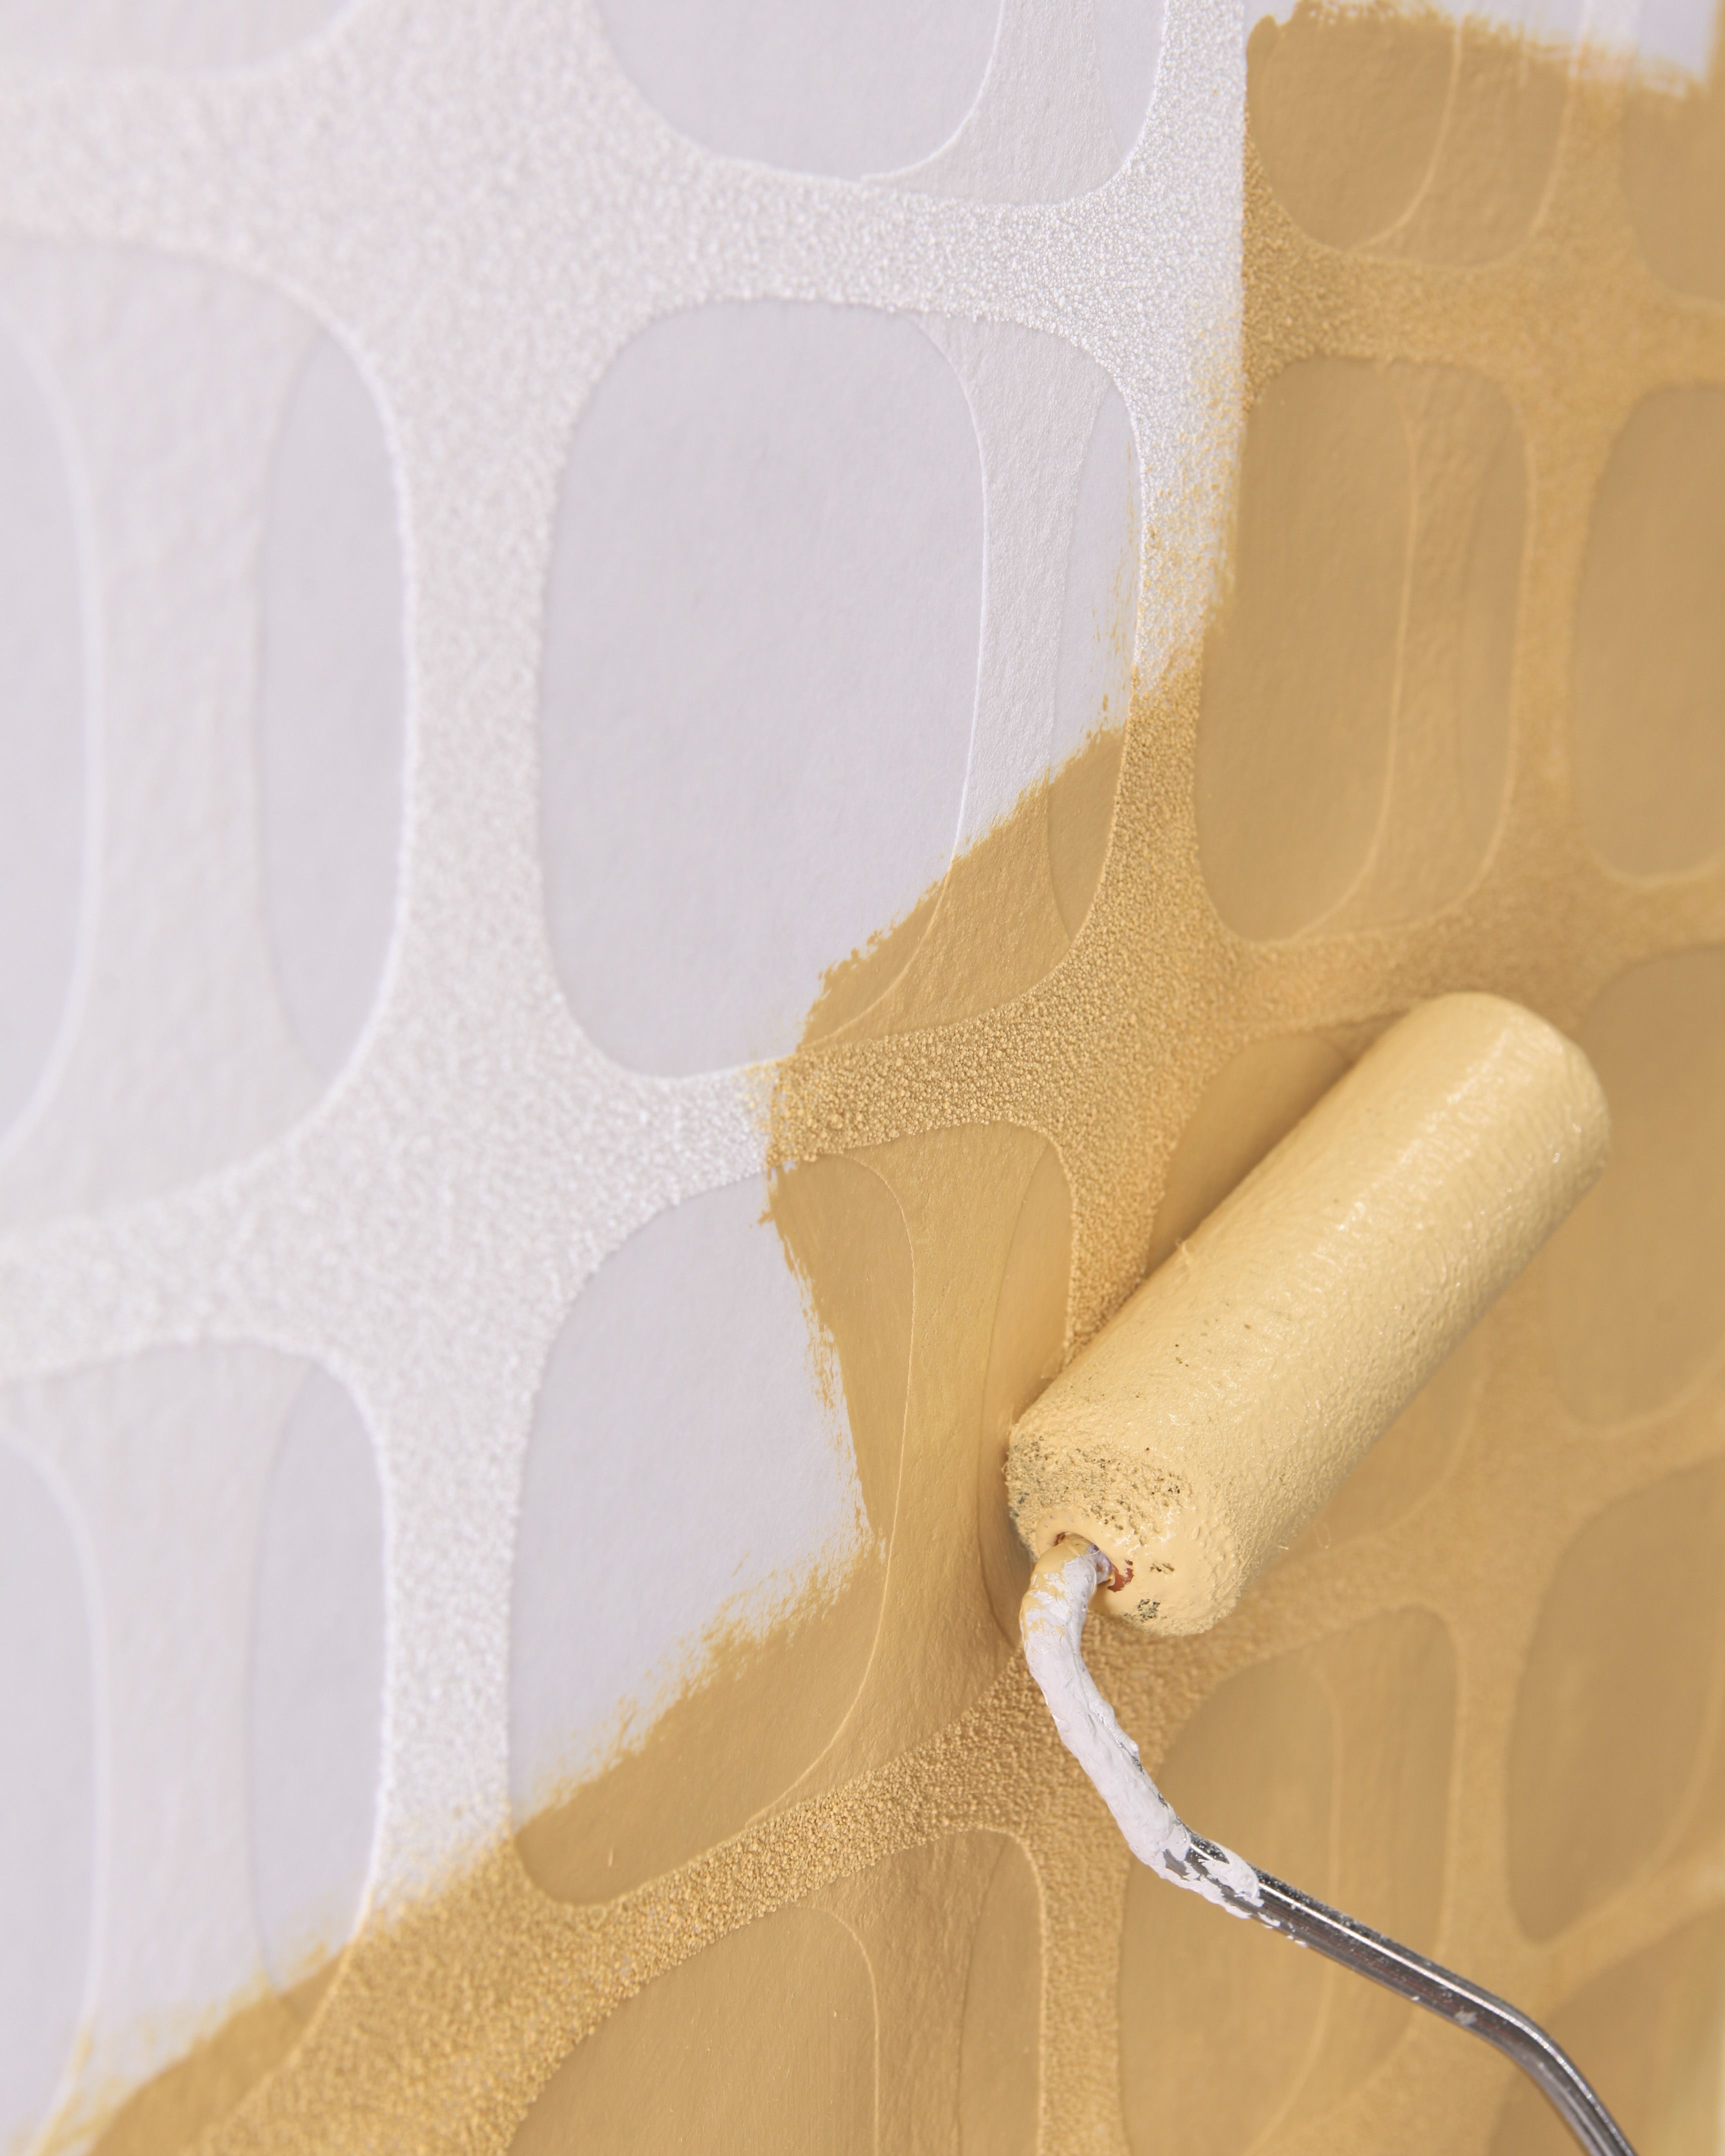 Textured Wallpaper Is A Beautiful Way To Add Interest To